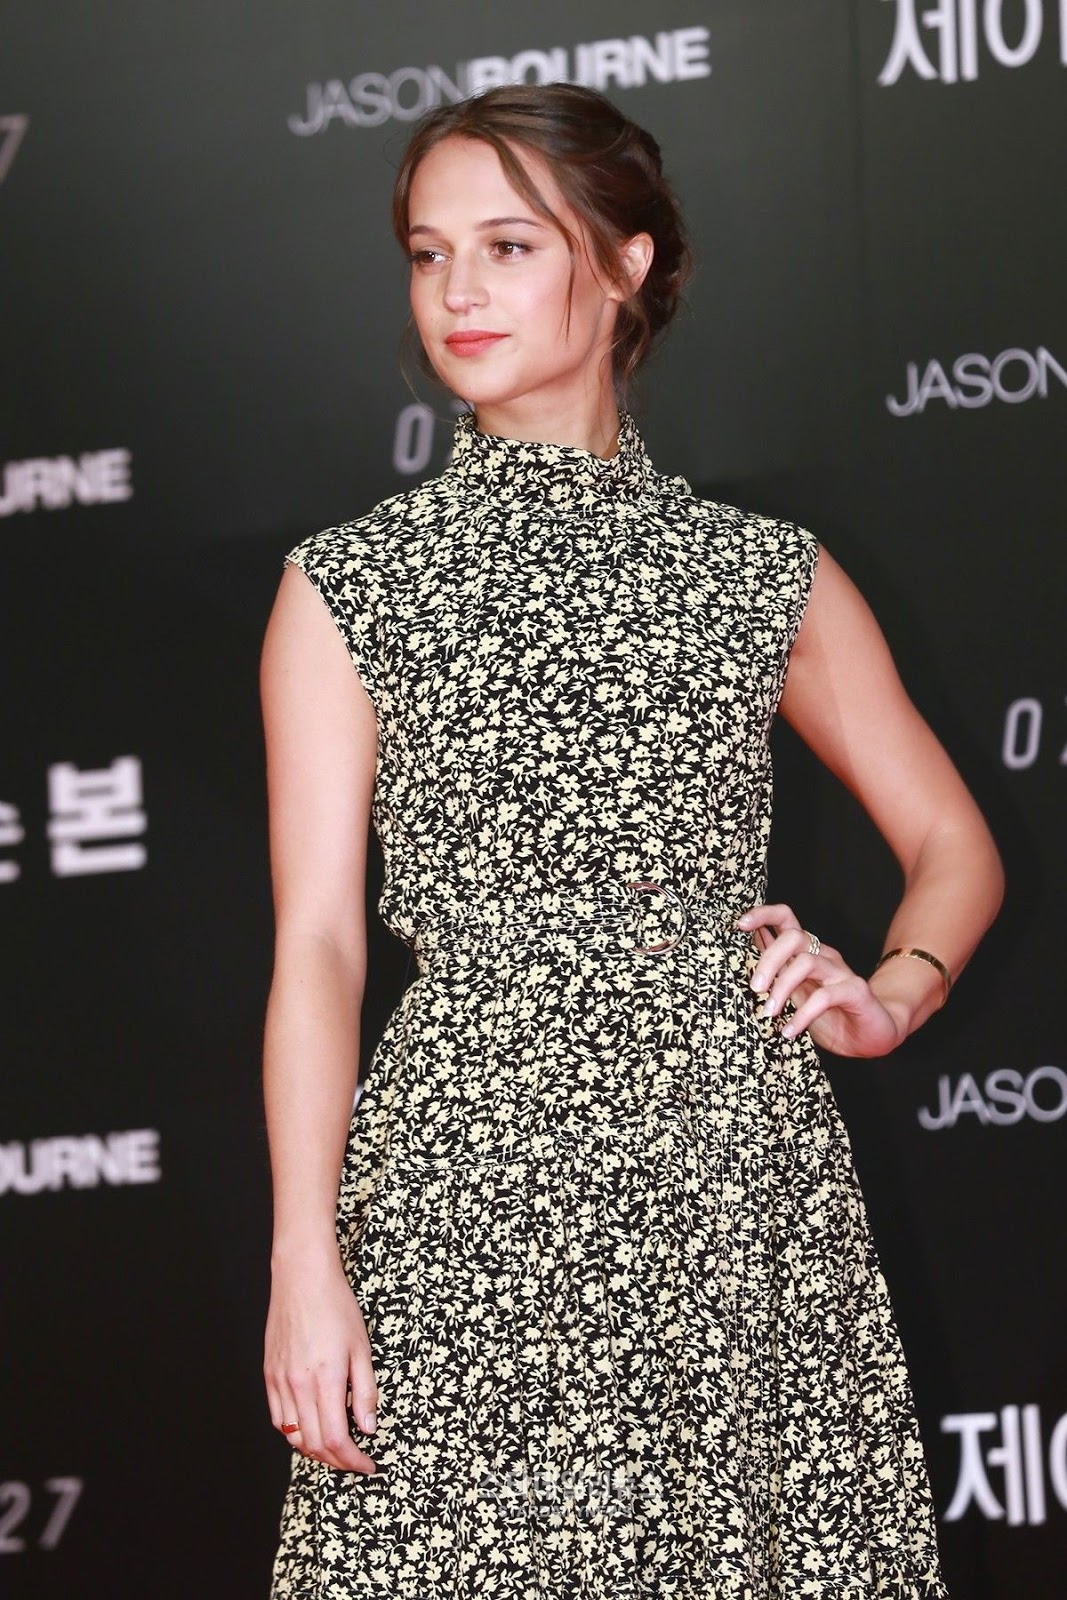 HQ Photos of Alicia Vikander At Jason Bourne Photocall In Seoul